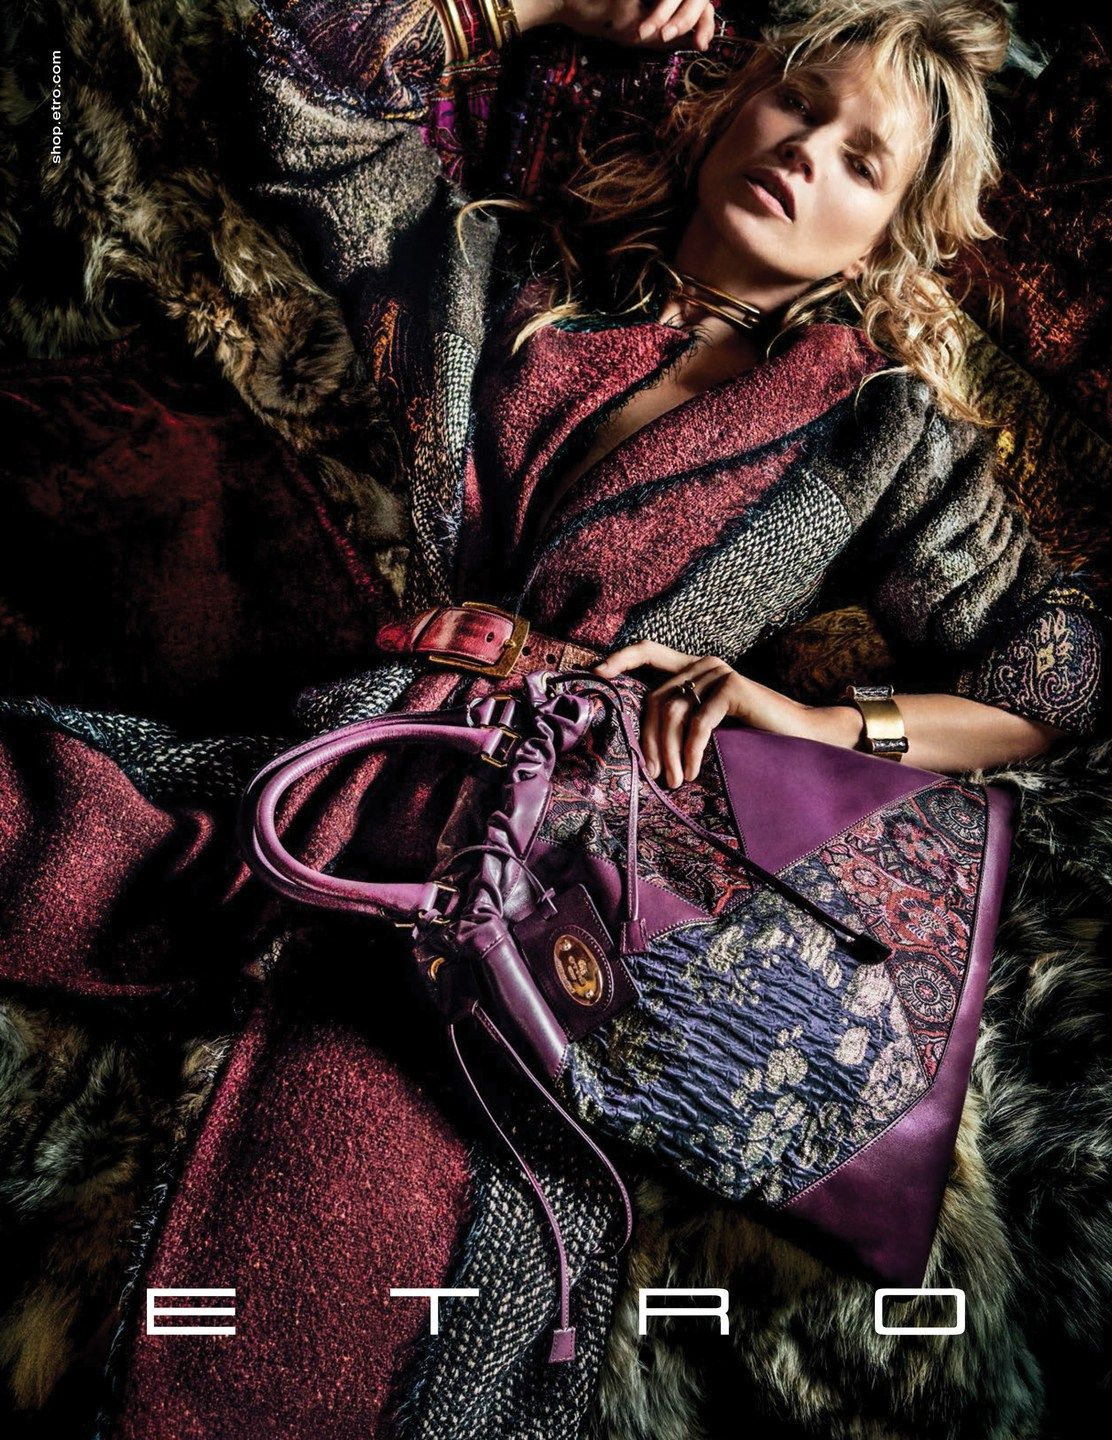 Moss kate for etro fall campaign images